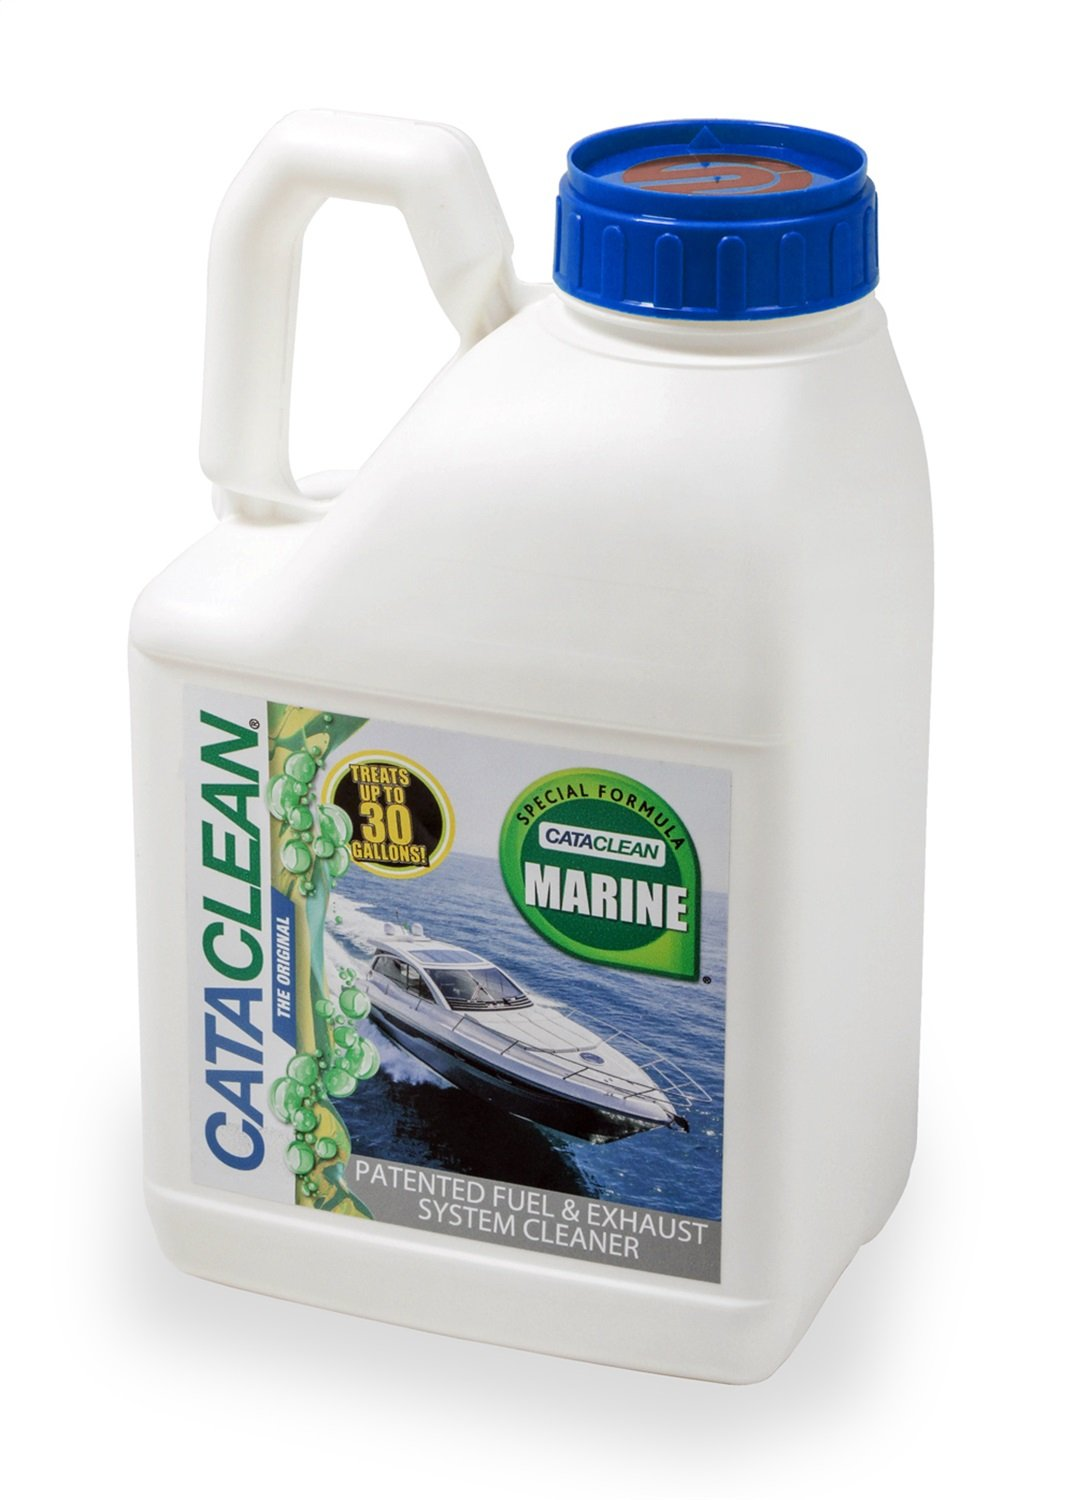 Cataclean 120018M Cataclean Fuel And Exhaust System Cleaner Special Formula For Use w/Marine Engines 3 Liters Cataclean Fuel And Exhaust System Cleaner by Cataclean